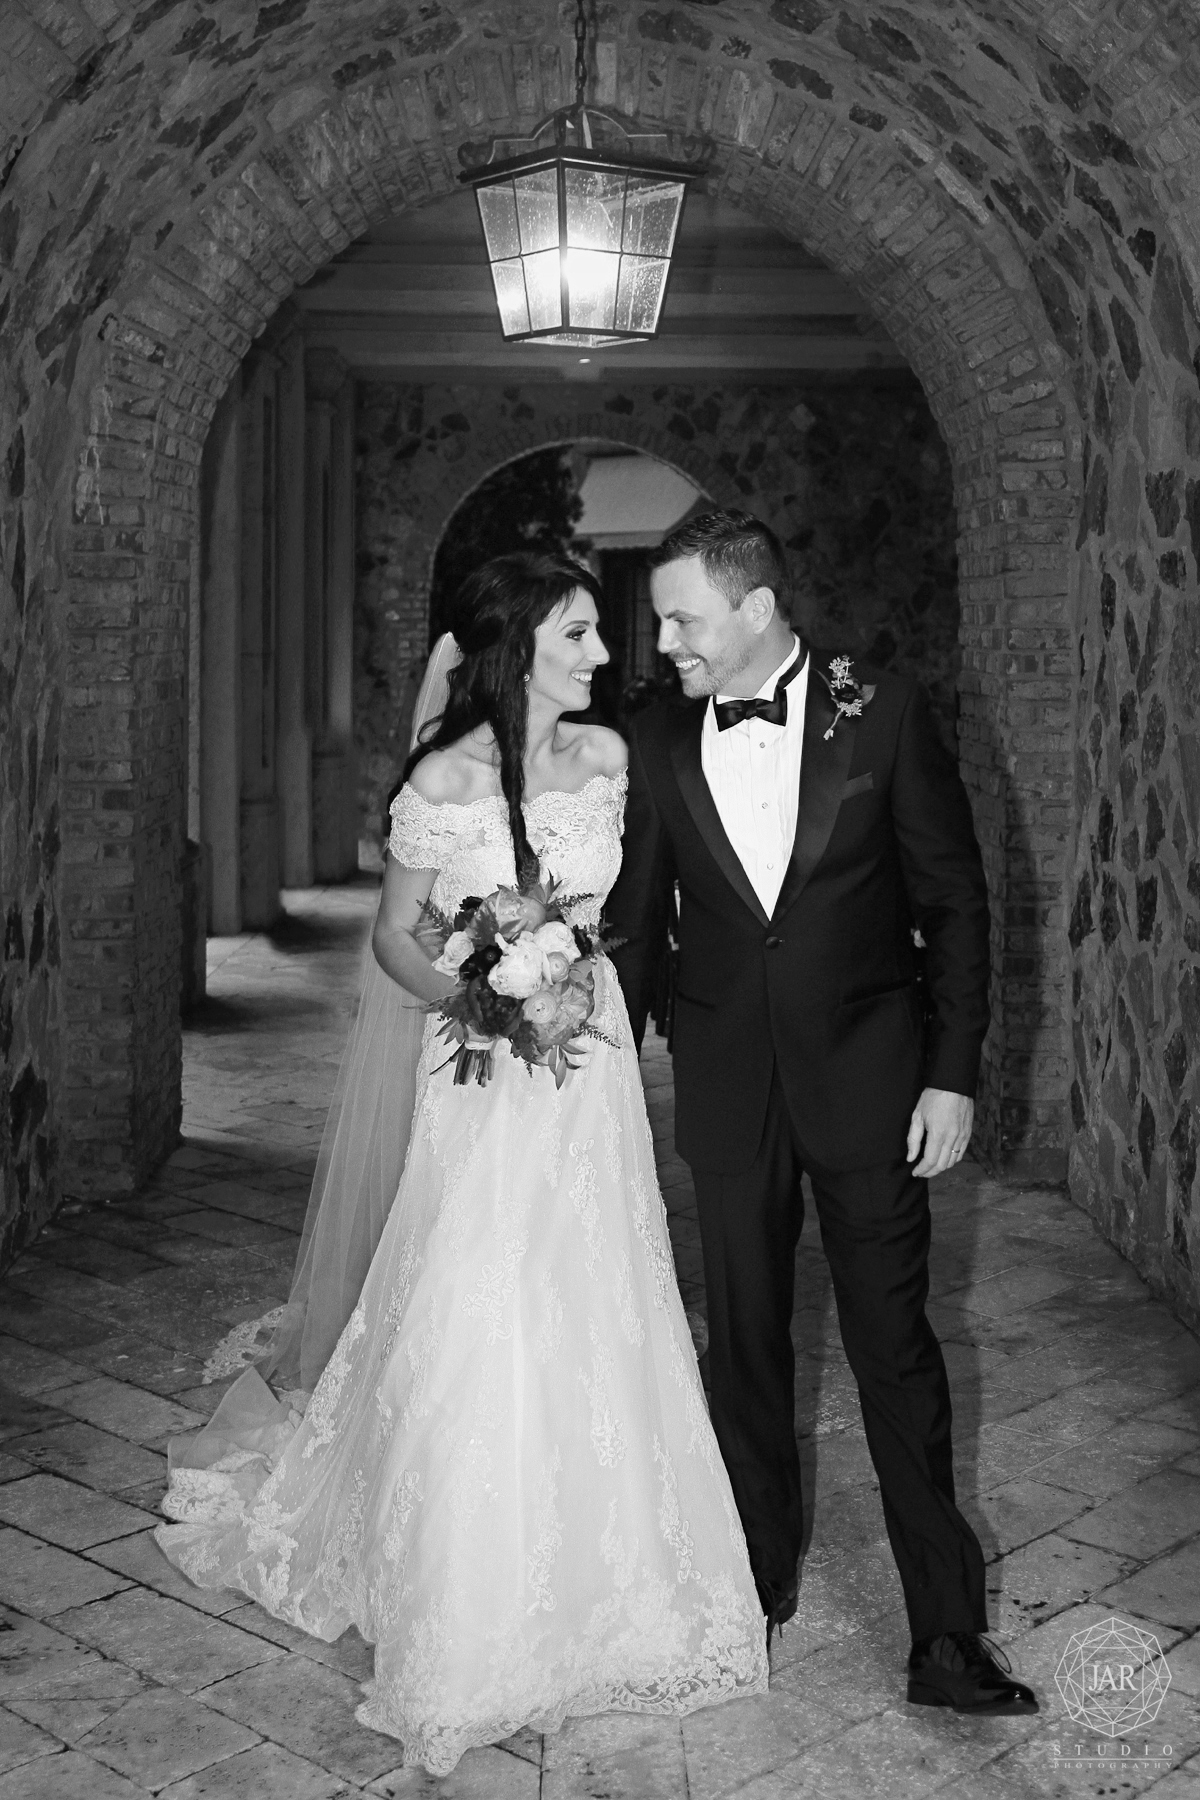 17-wedding-aislel-bella-collina-jarstudio.jpg